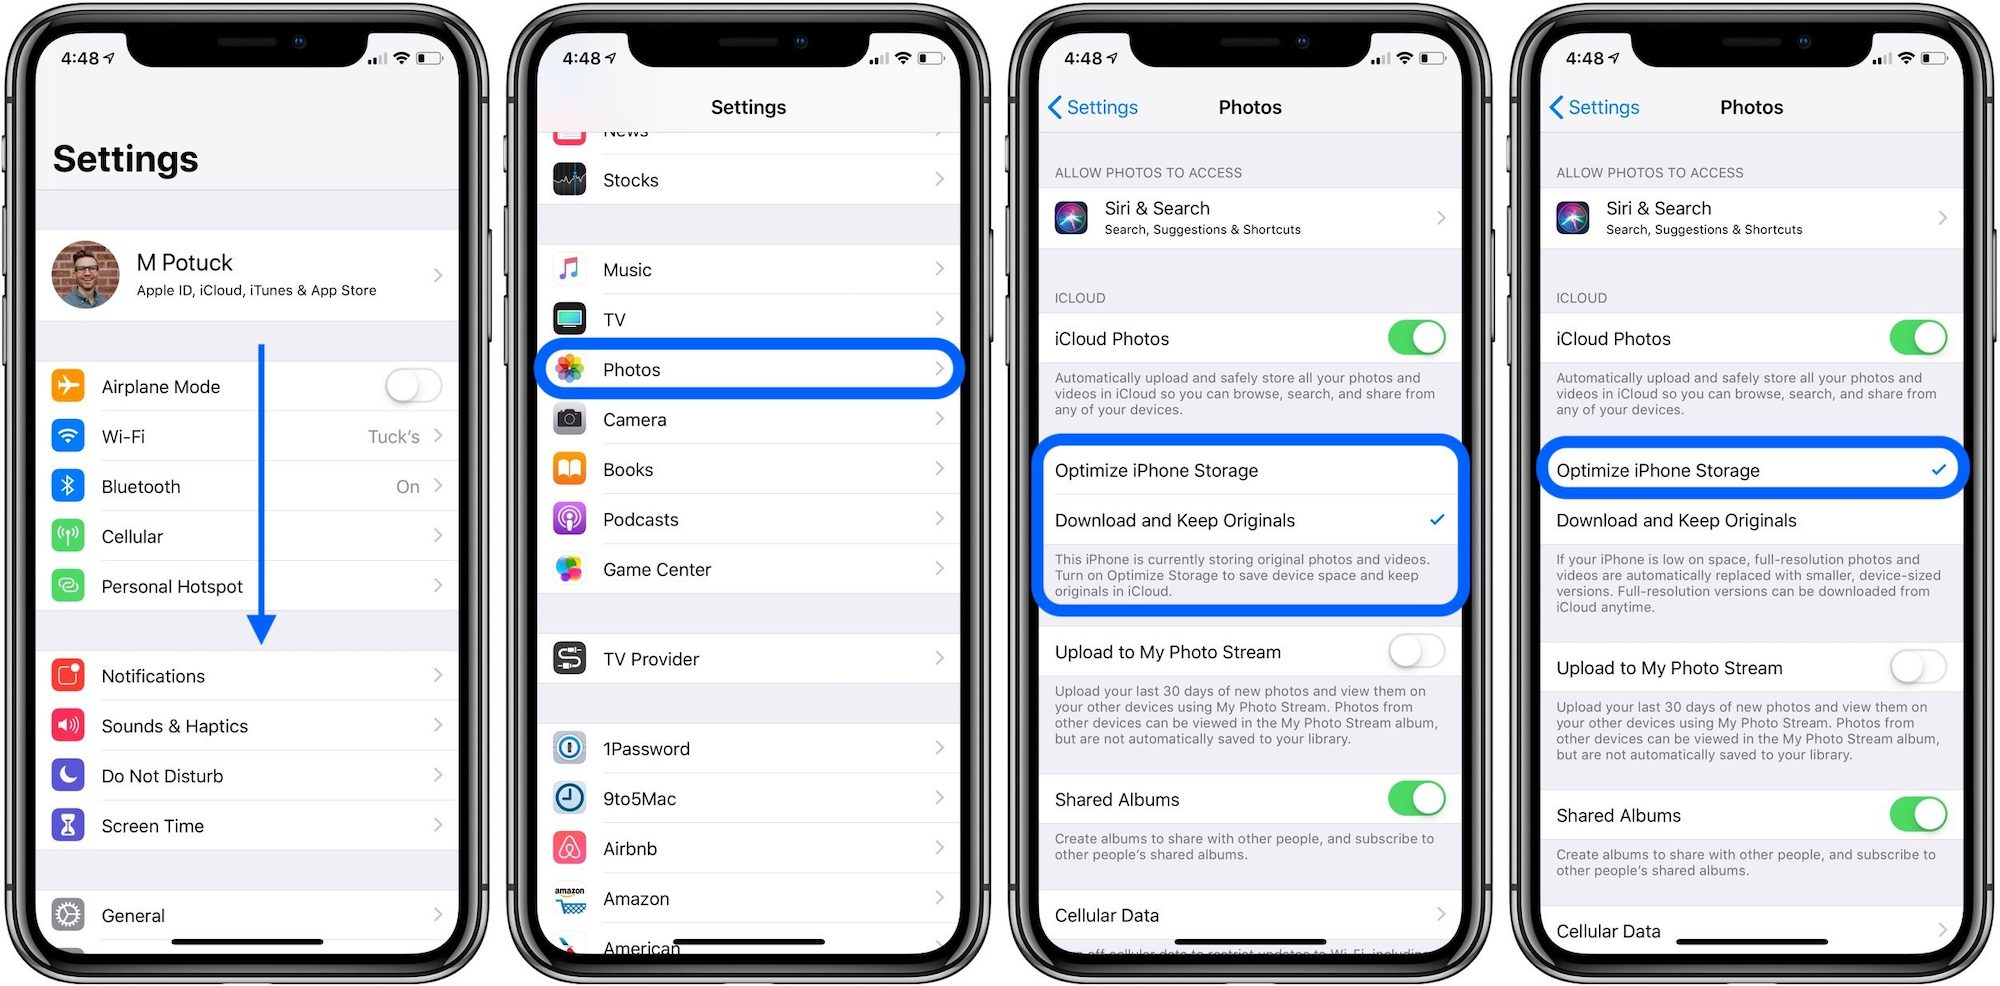 How To Optimize Photo Storage Ios 12